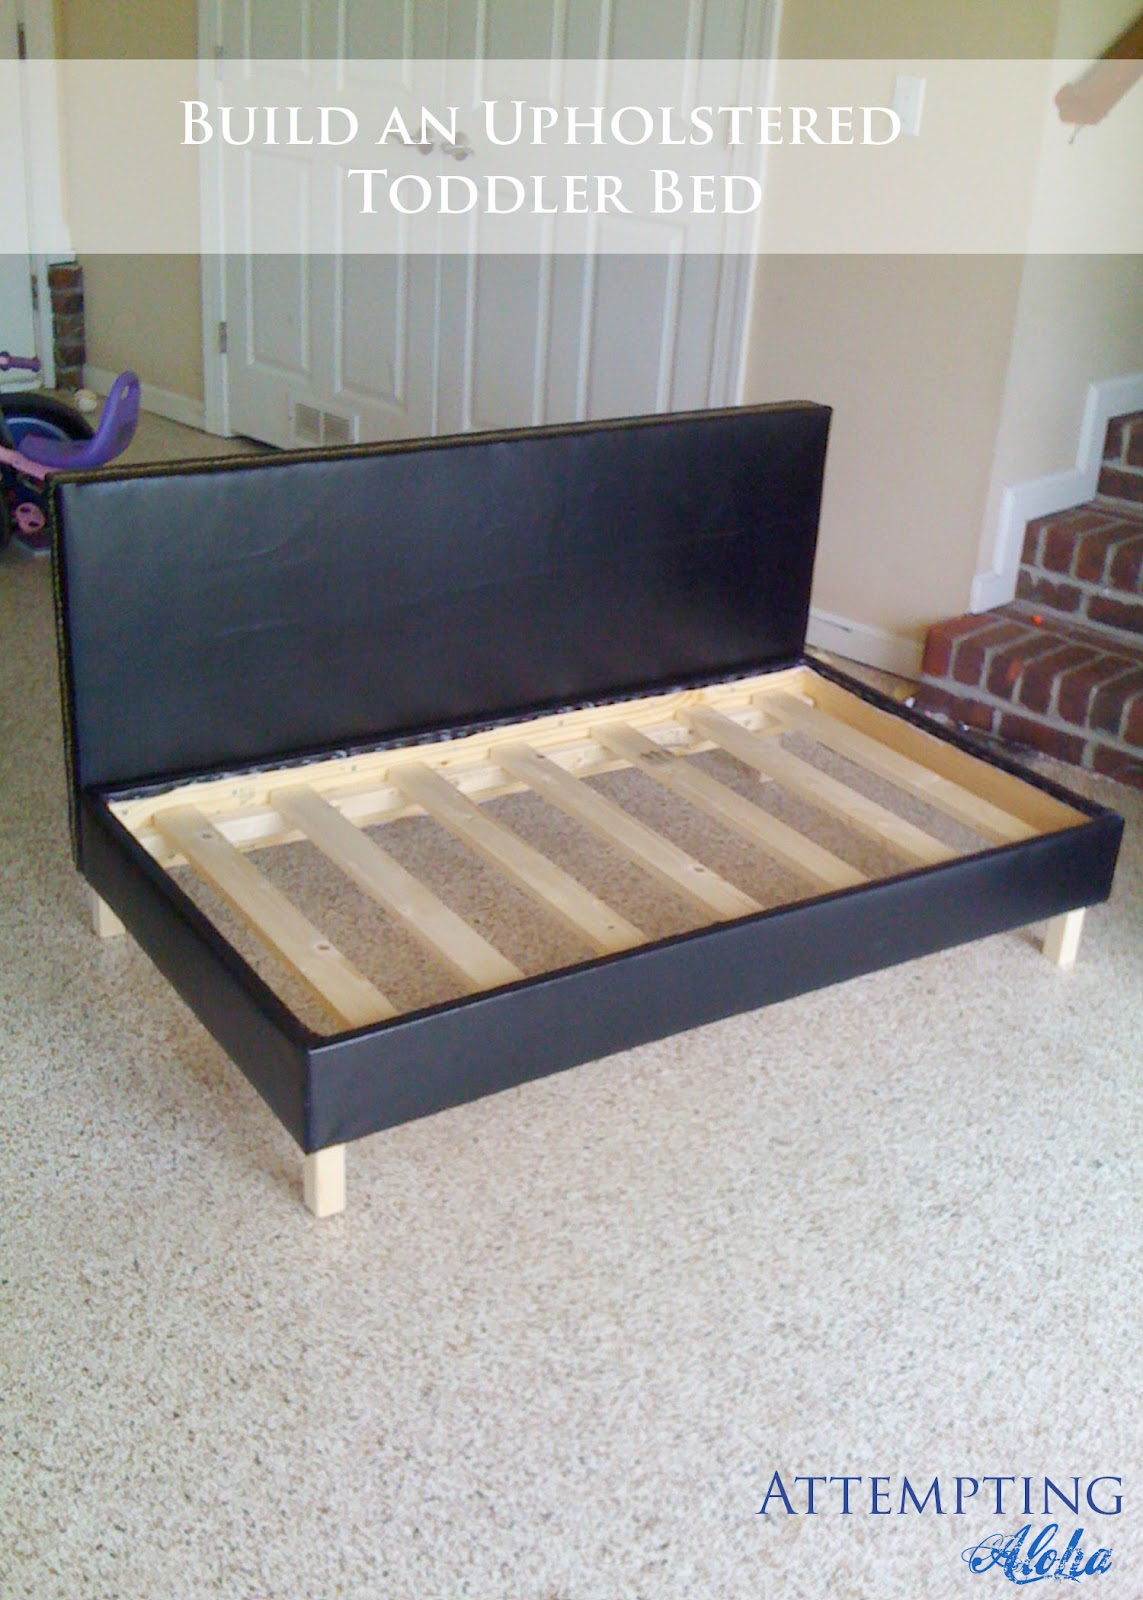 Attempting Aloha Diy Upholstered Toddler Bed Couch Plans